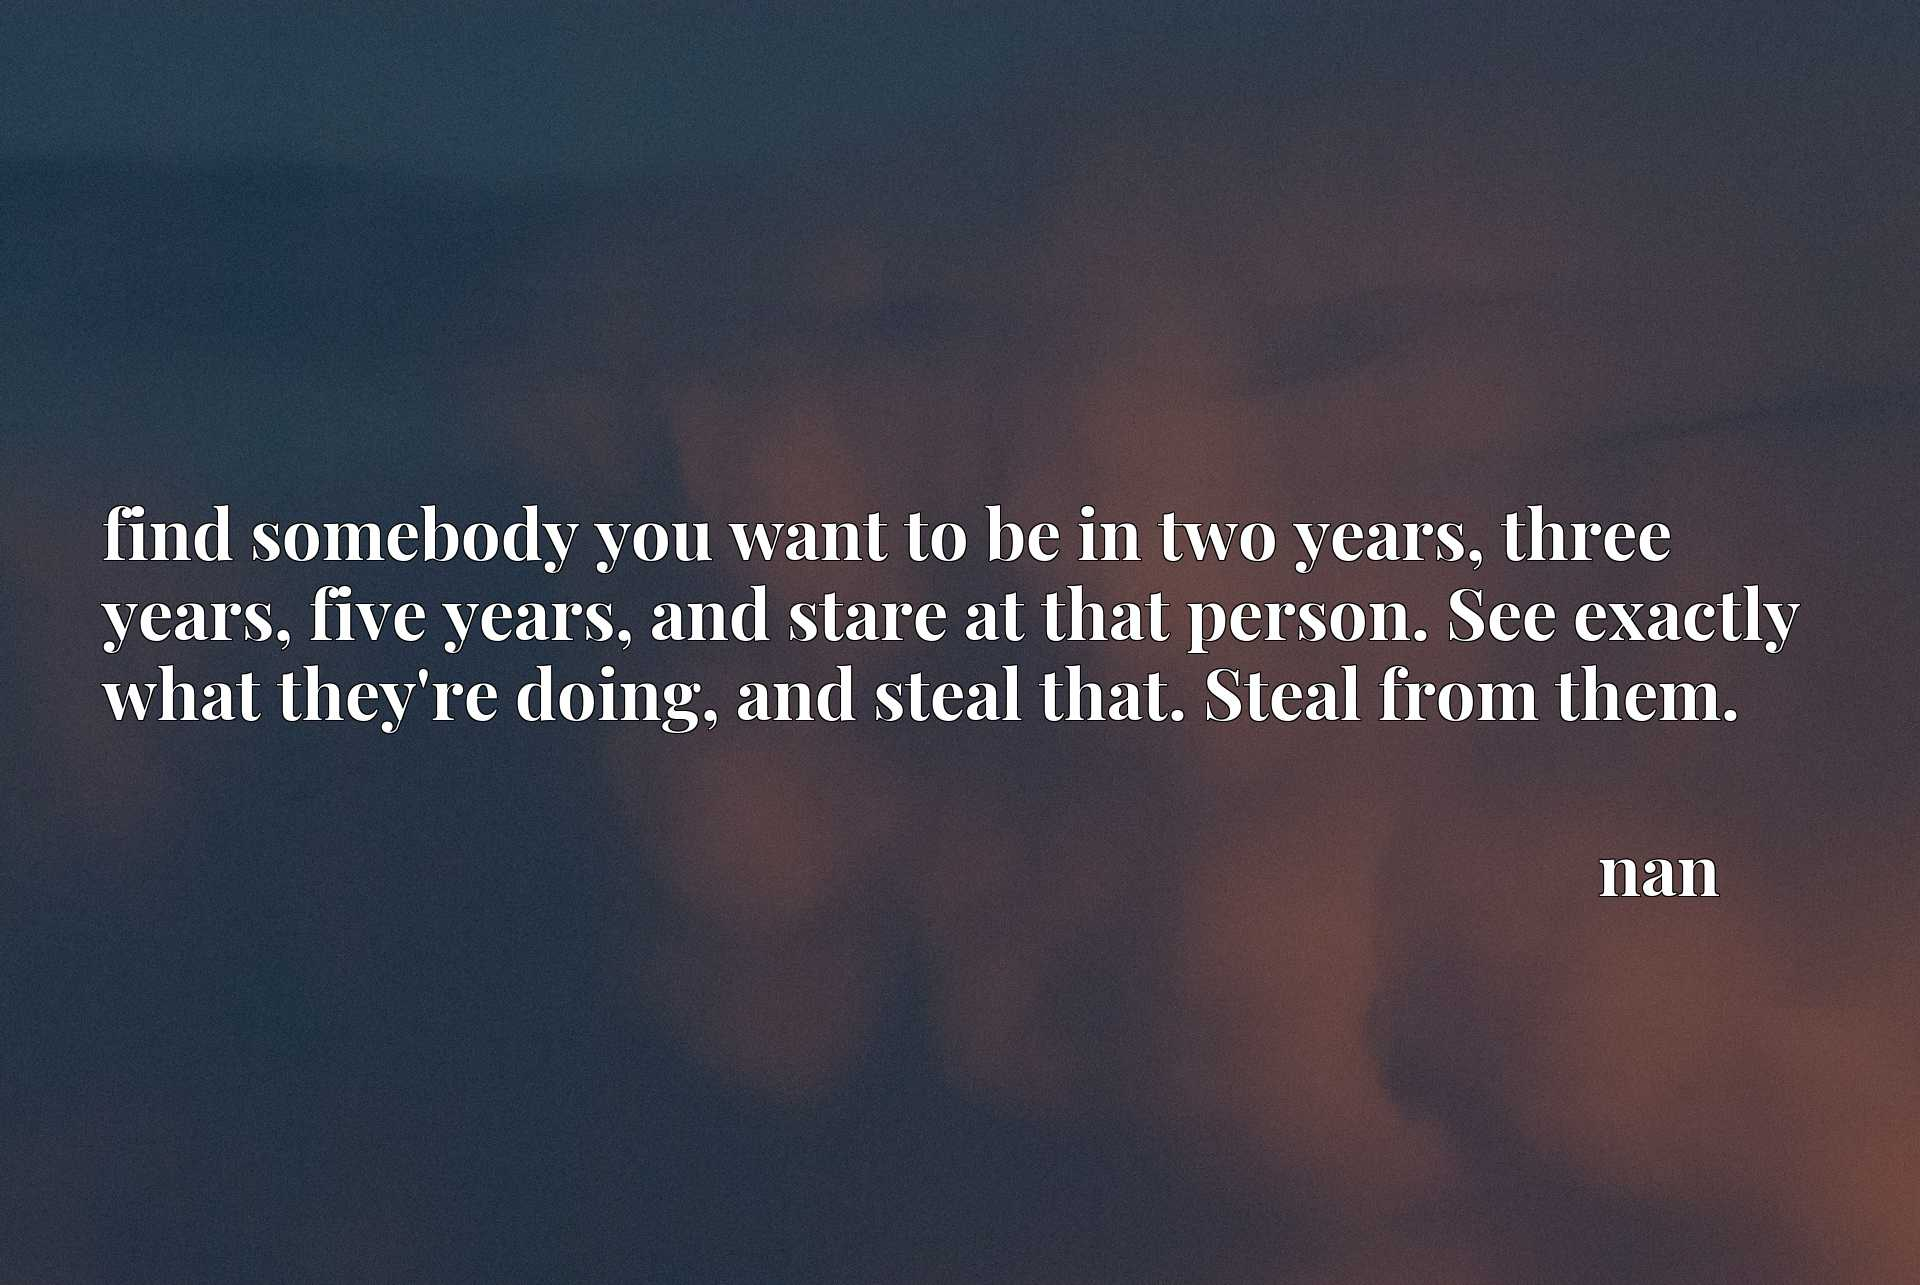 find somebody you want to be in two years, three years, five years, and stare at that person. See exactly what they're doing, and steal that. Steal from them.